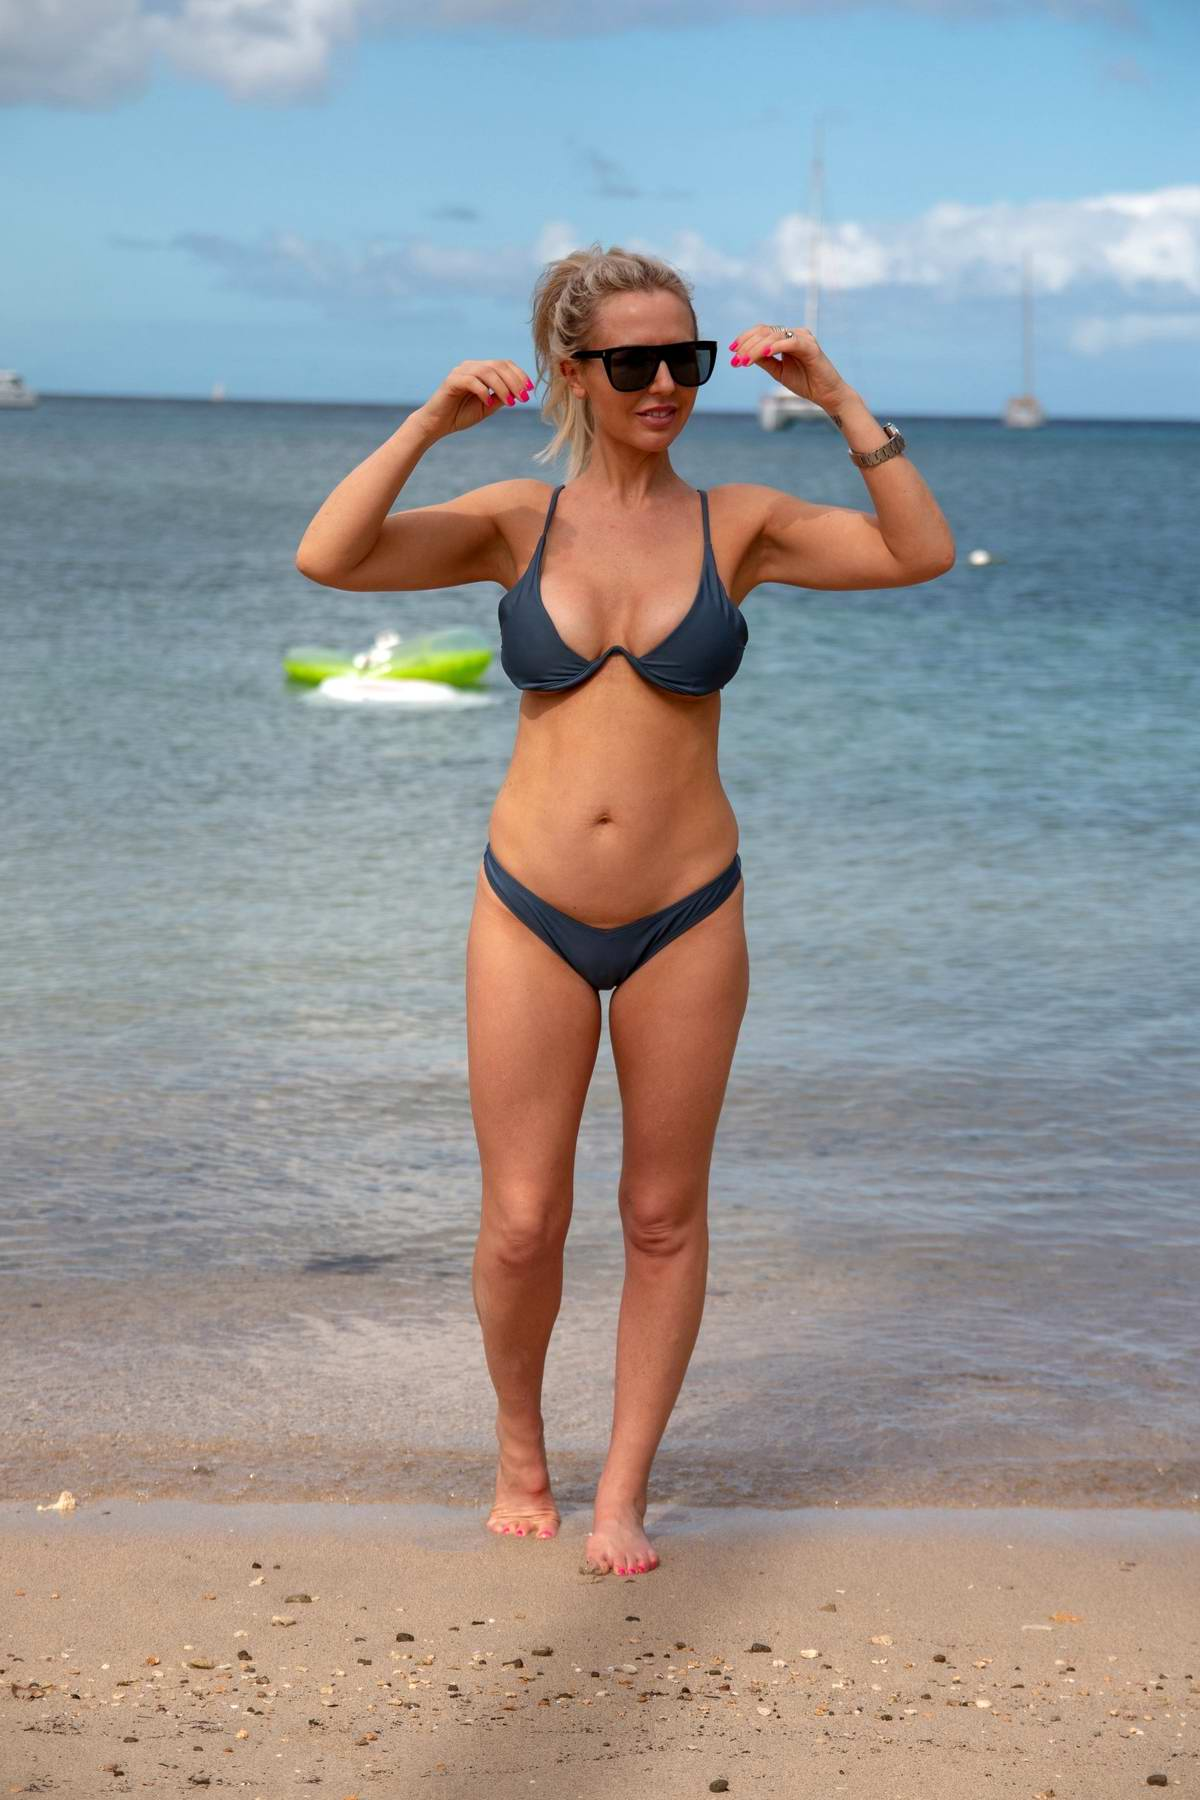 Naomi Isted shows off her bikini body while enjoying a day at the beach in Saint Lucia, Bahamas